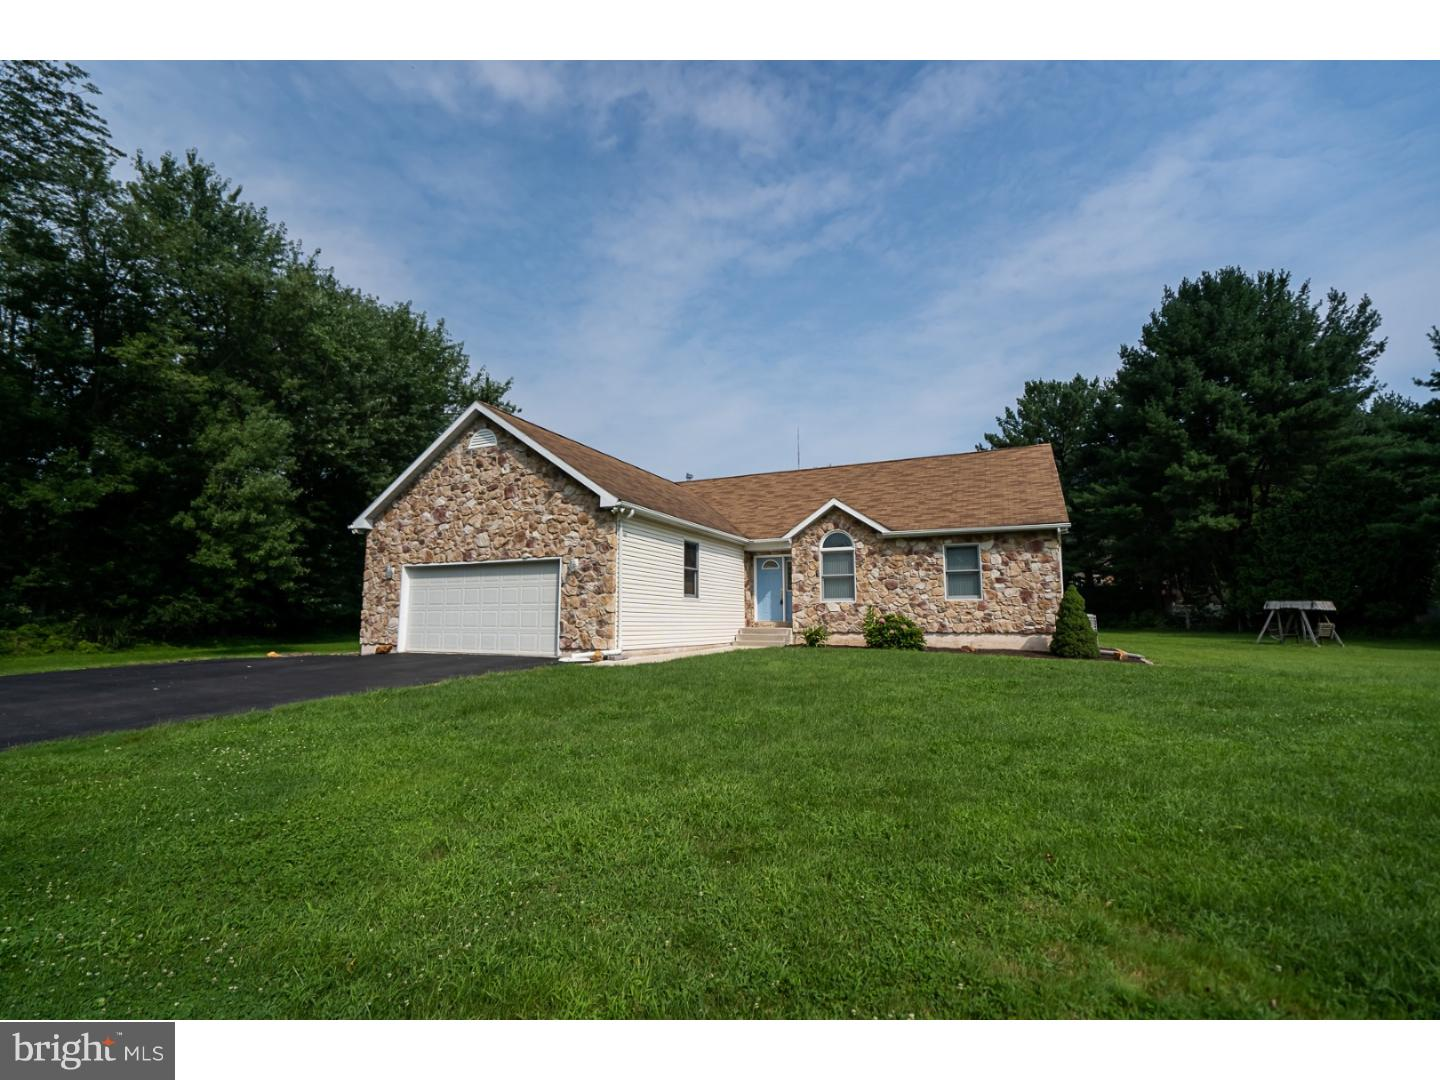 3701 BITTERSWEET ROAD, CENTER VALLEY, PA 18034